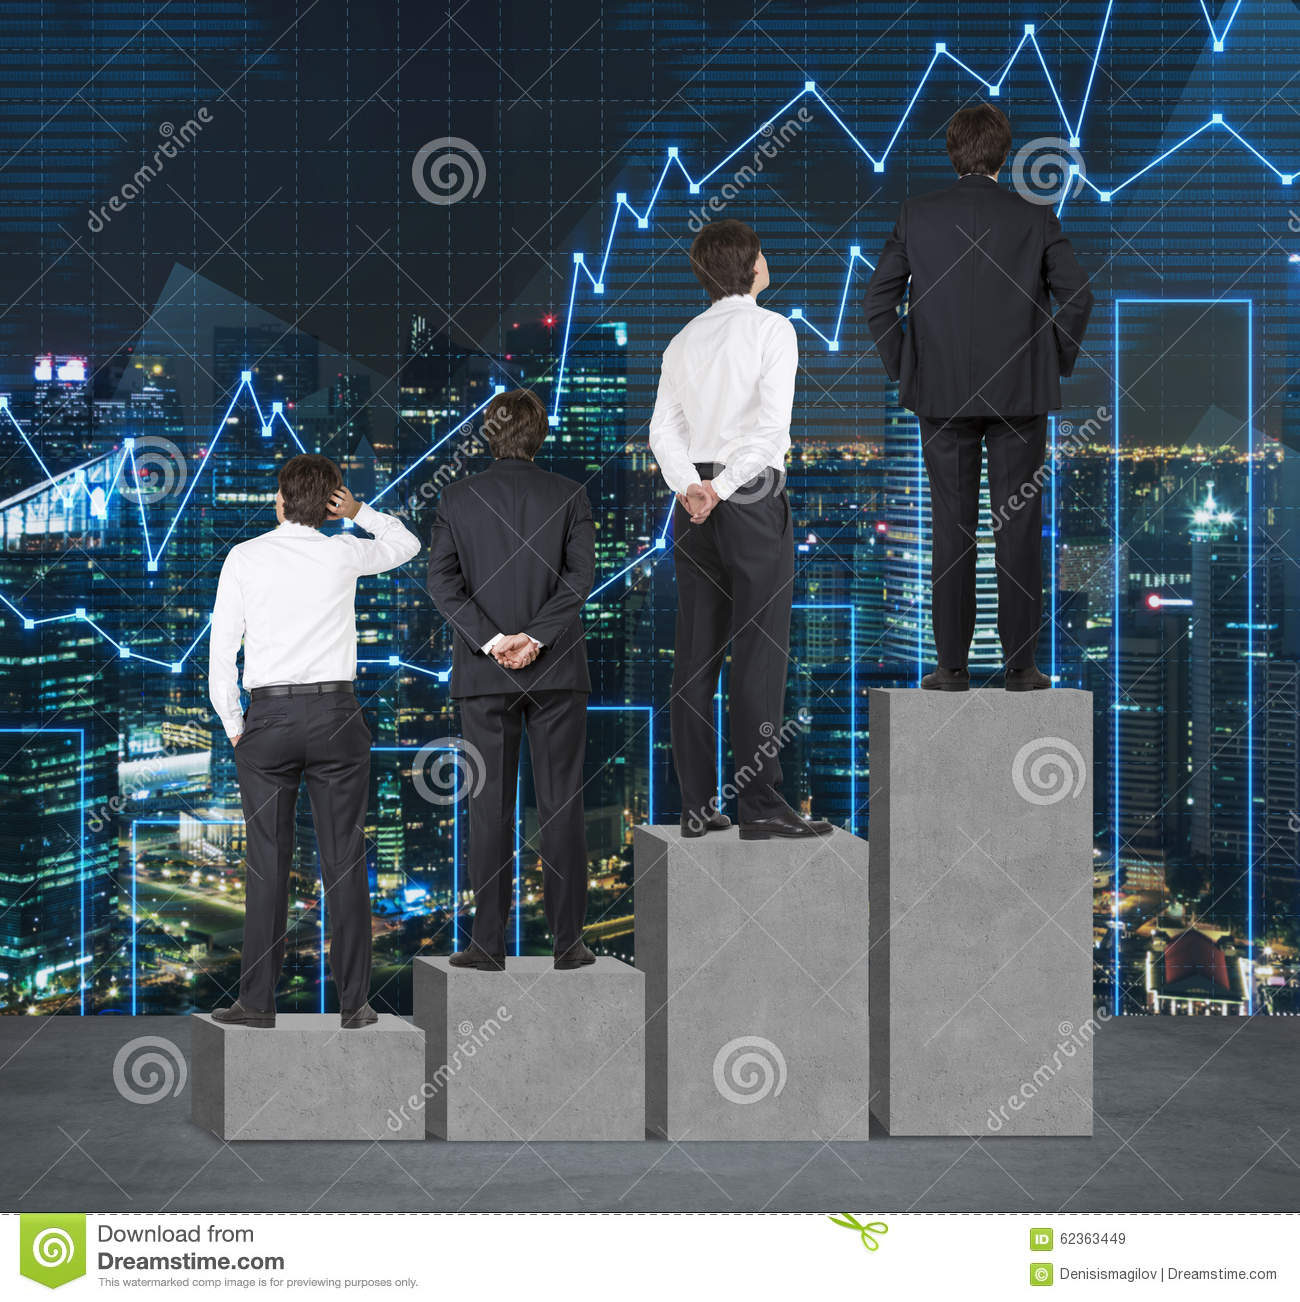 Stairs as a huge concrete bar chart. Businessmen are standing on each step as a concept of range of problems or levels of responsi